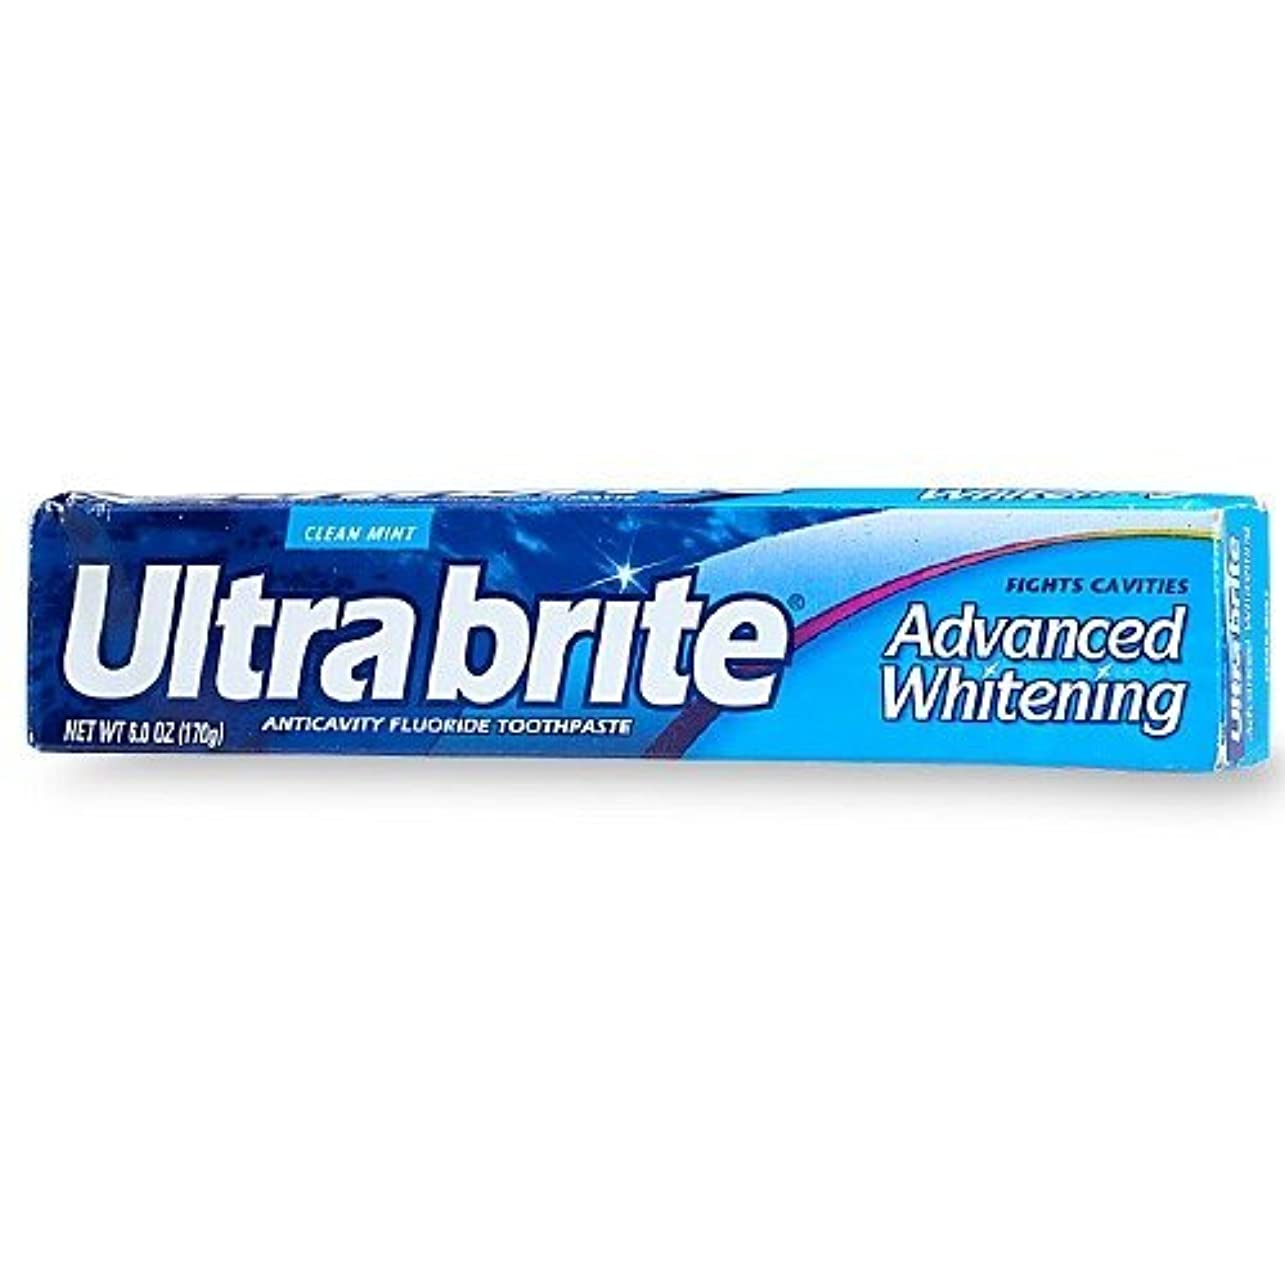 フォーマット勇敢なジャンプ海外直送品Colgate Colgate Ultra Brite Advanced Whitening Fluoride Toothpaste, 6 oz (Pack of 3)